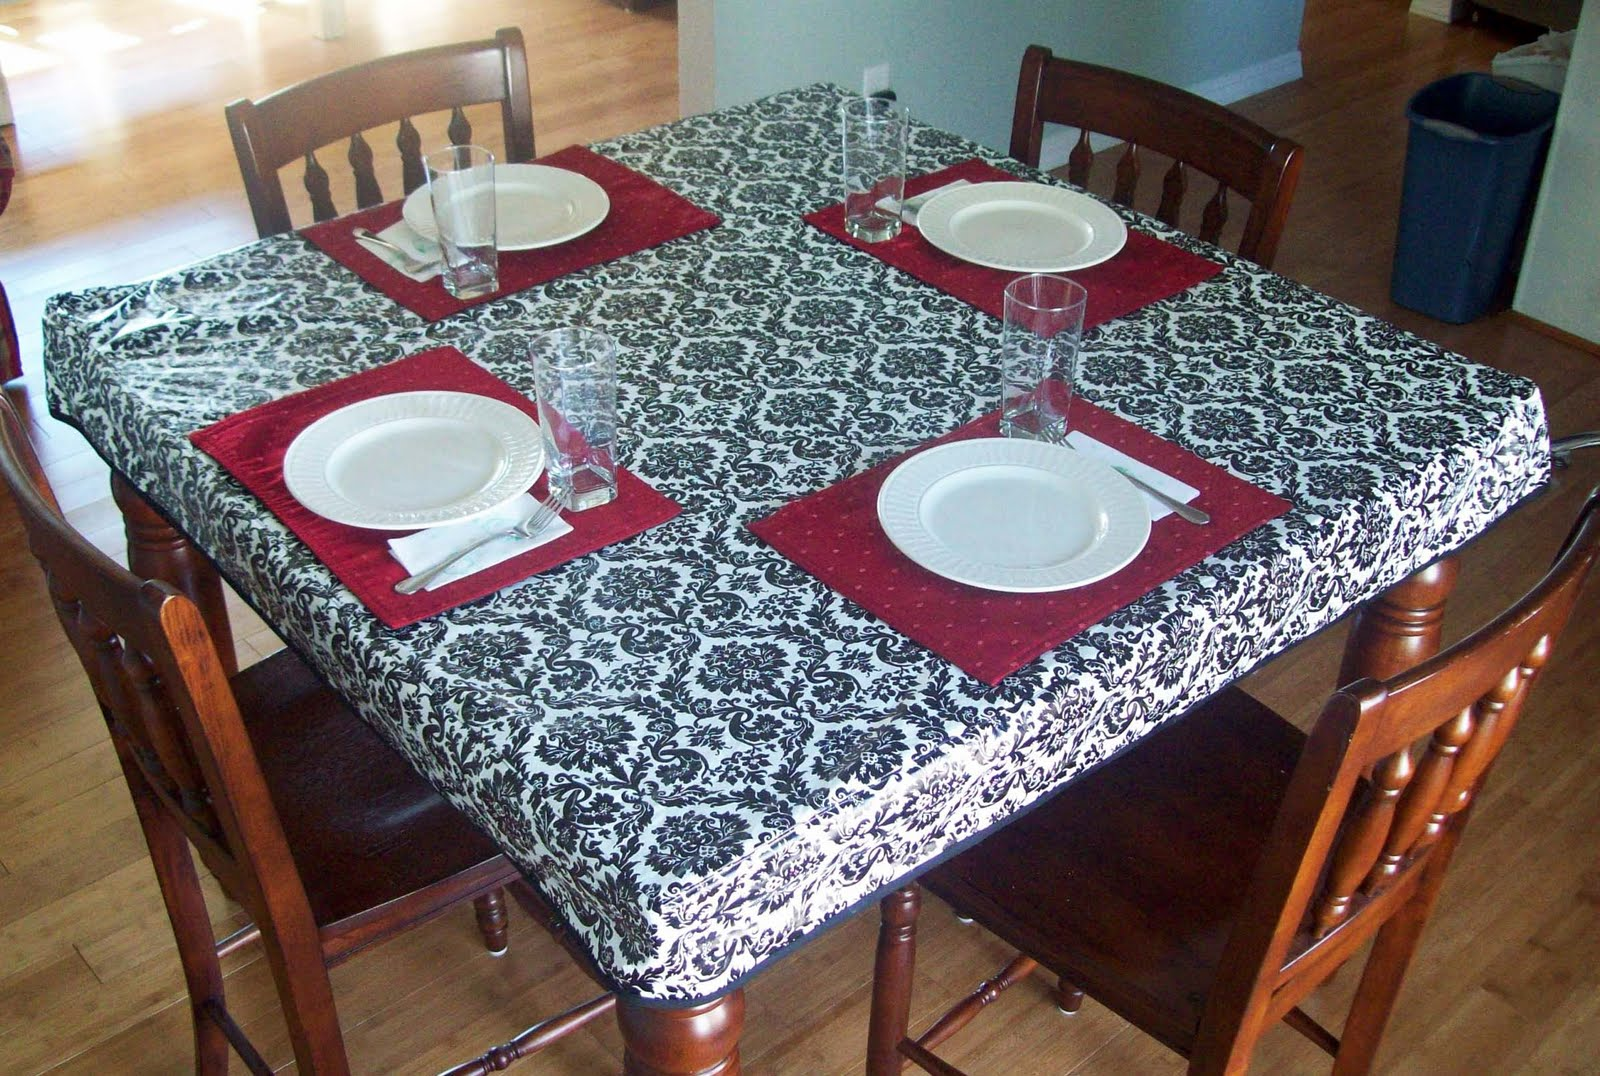 Heavy Duty Vinyl Tablecloth | Vinyl Tablecloths | Elastic Vinyl Tablecloth  Oval